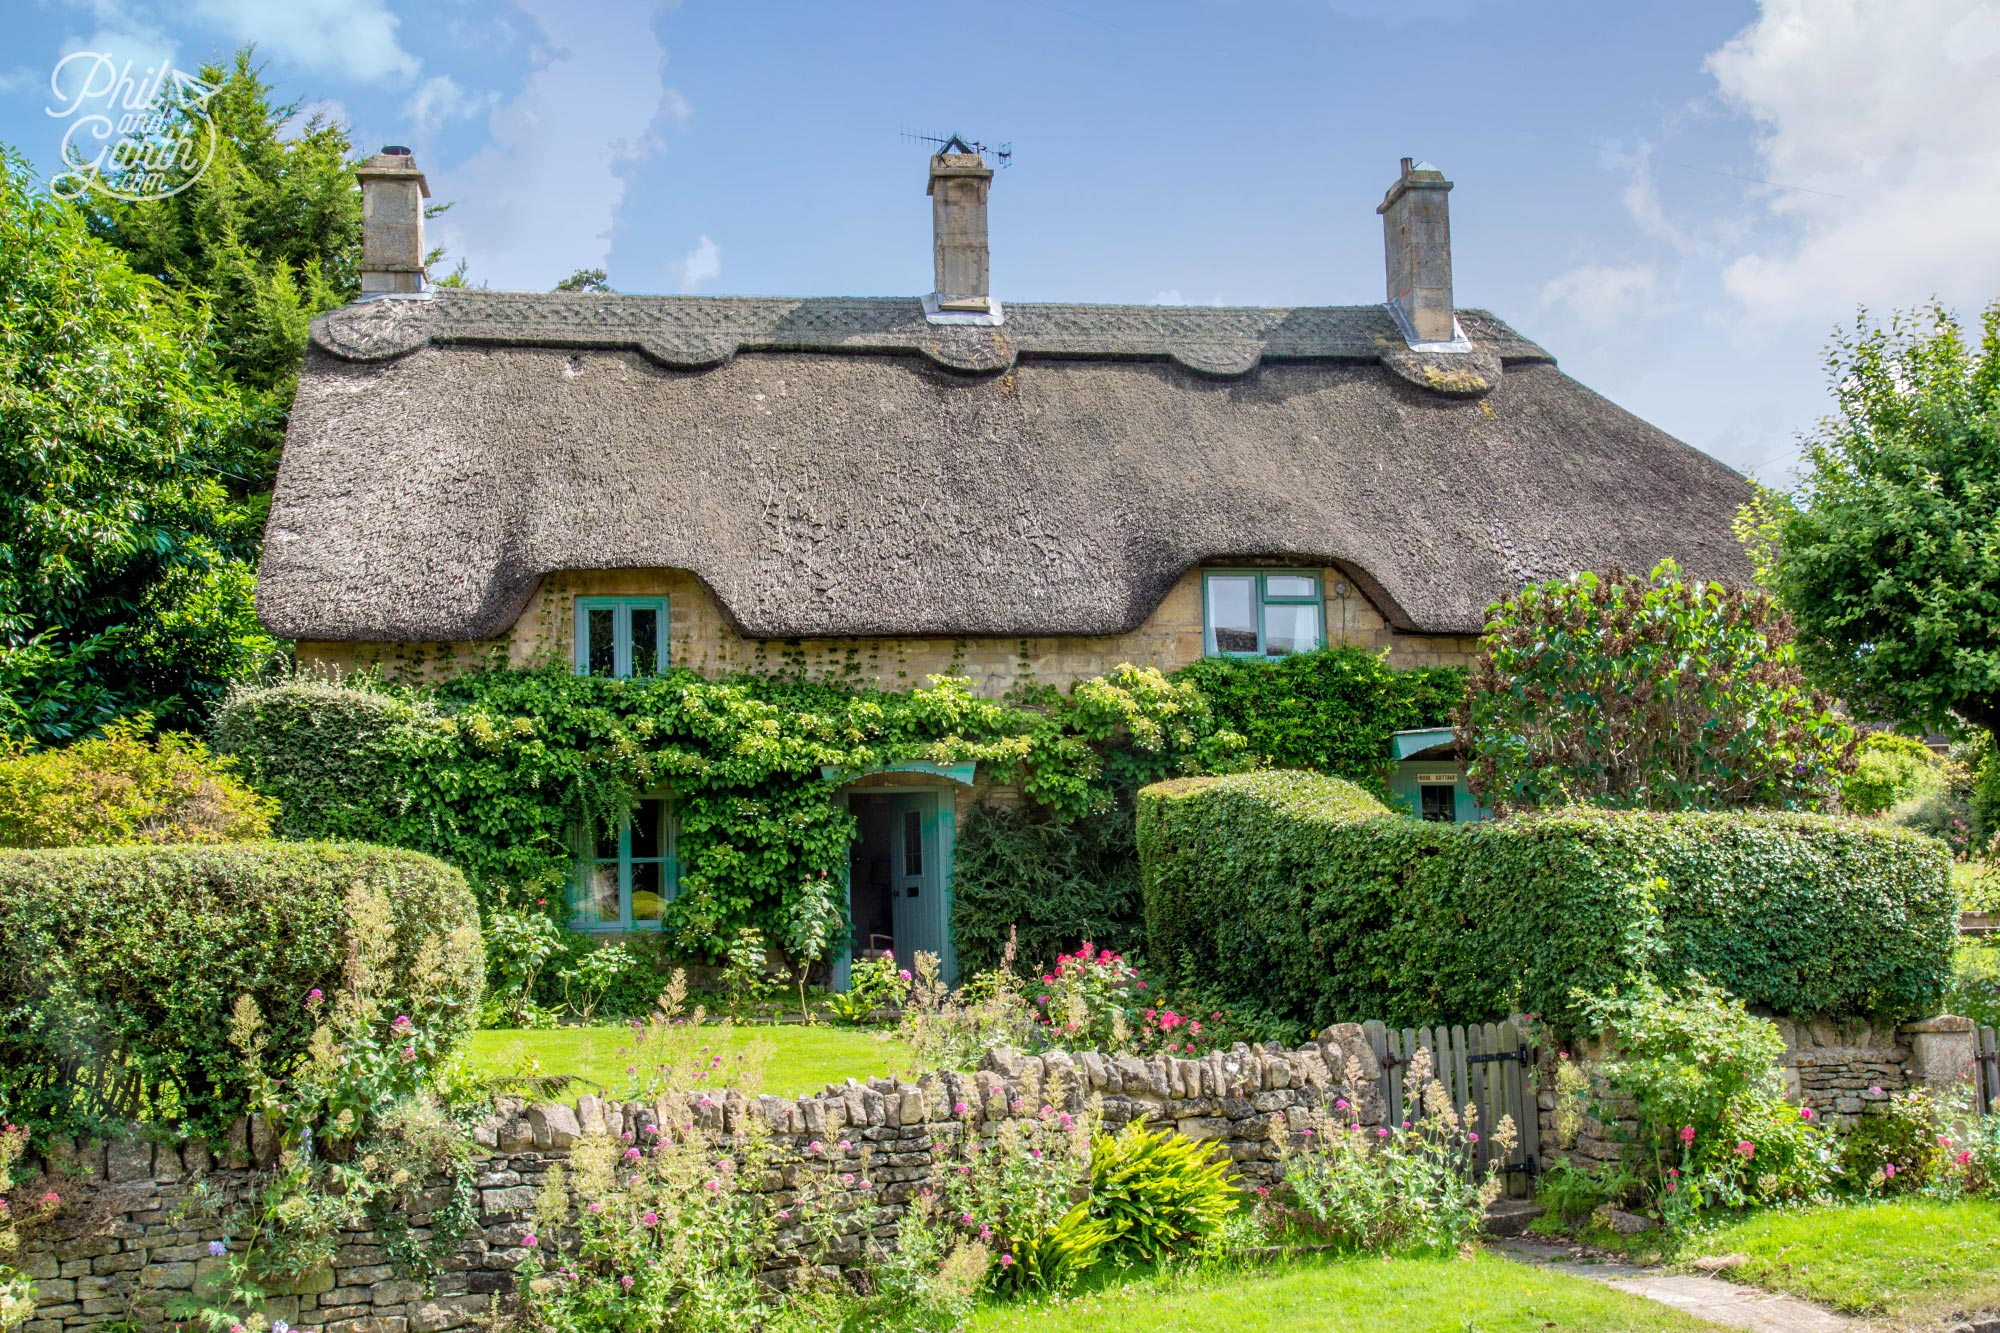 A couple of beautiful thatched cottages in Chipping Campden